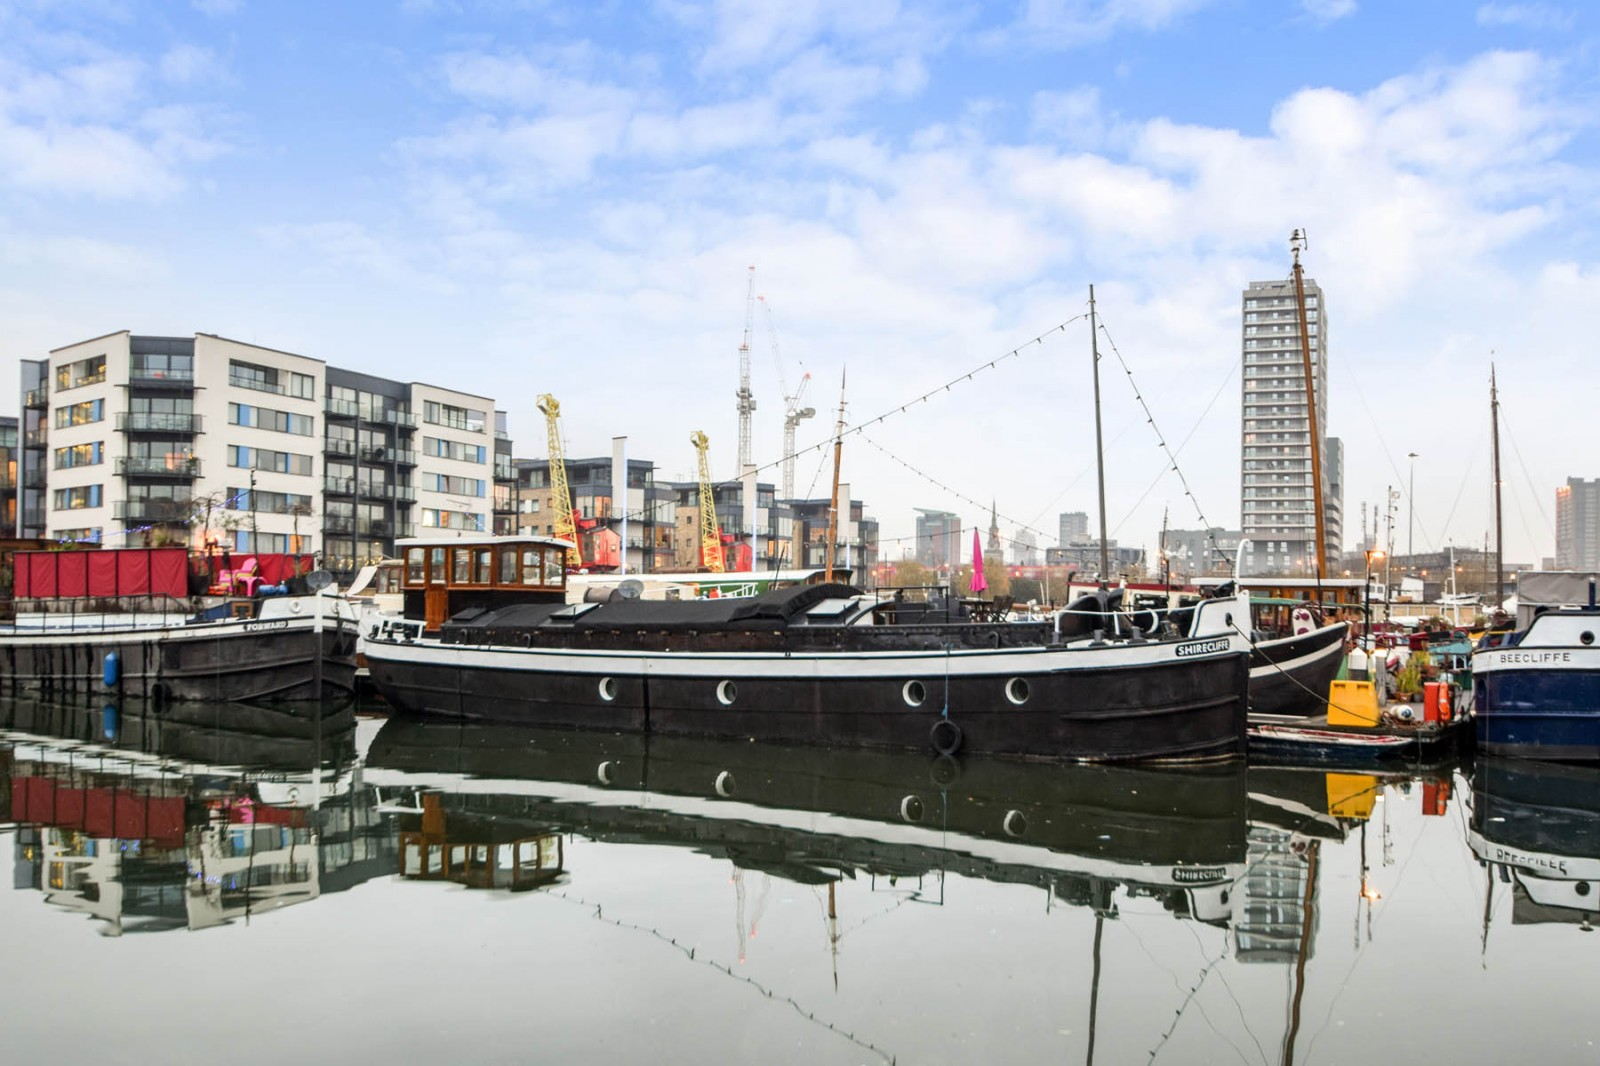 Blackwall barge stamp duty alternatives